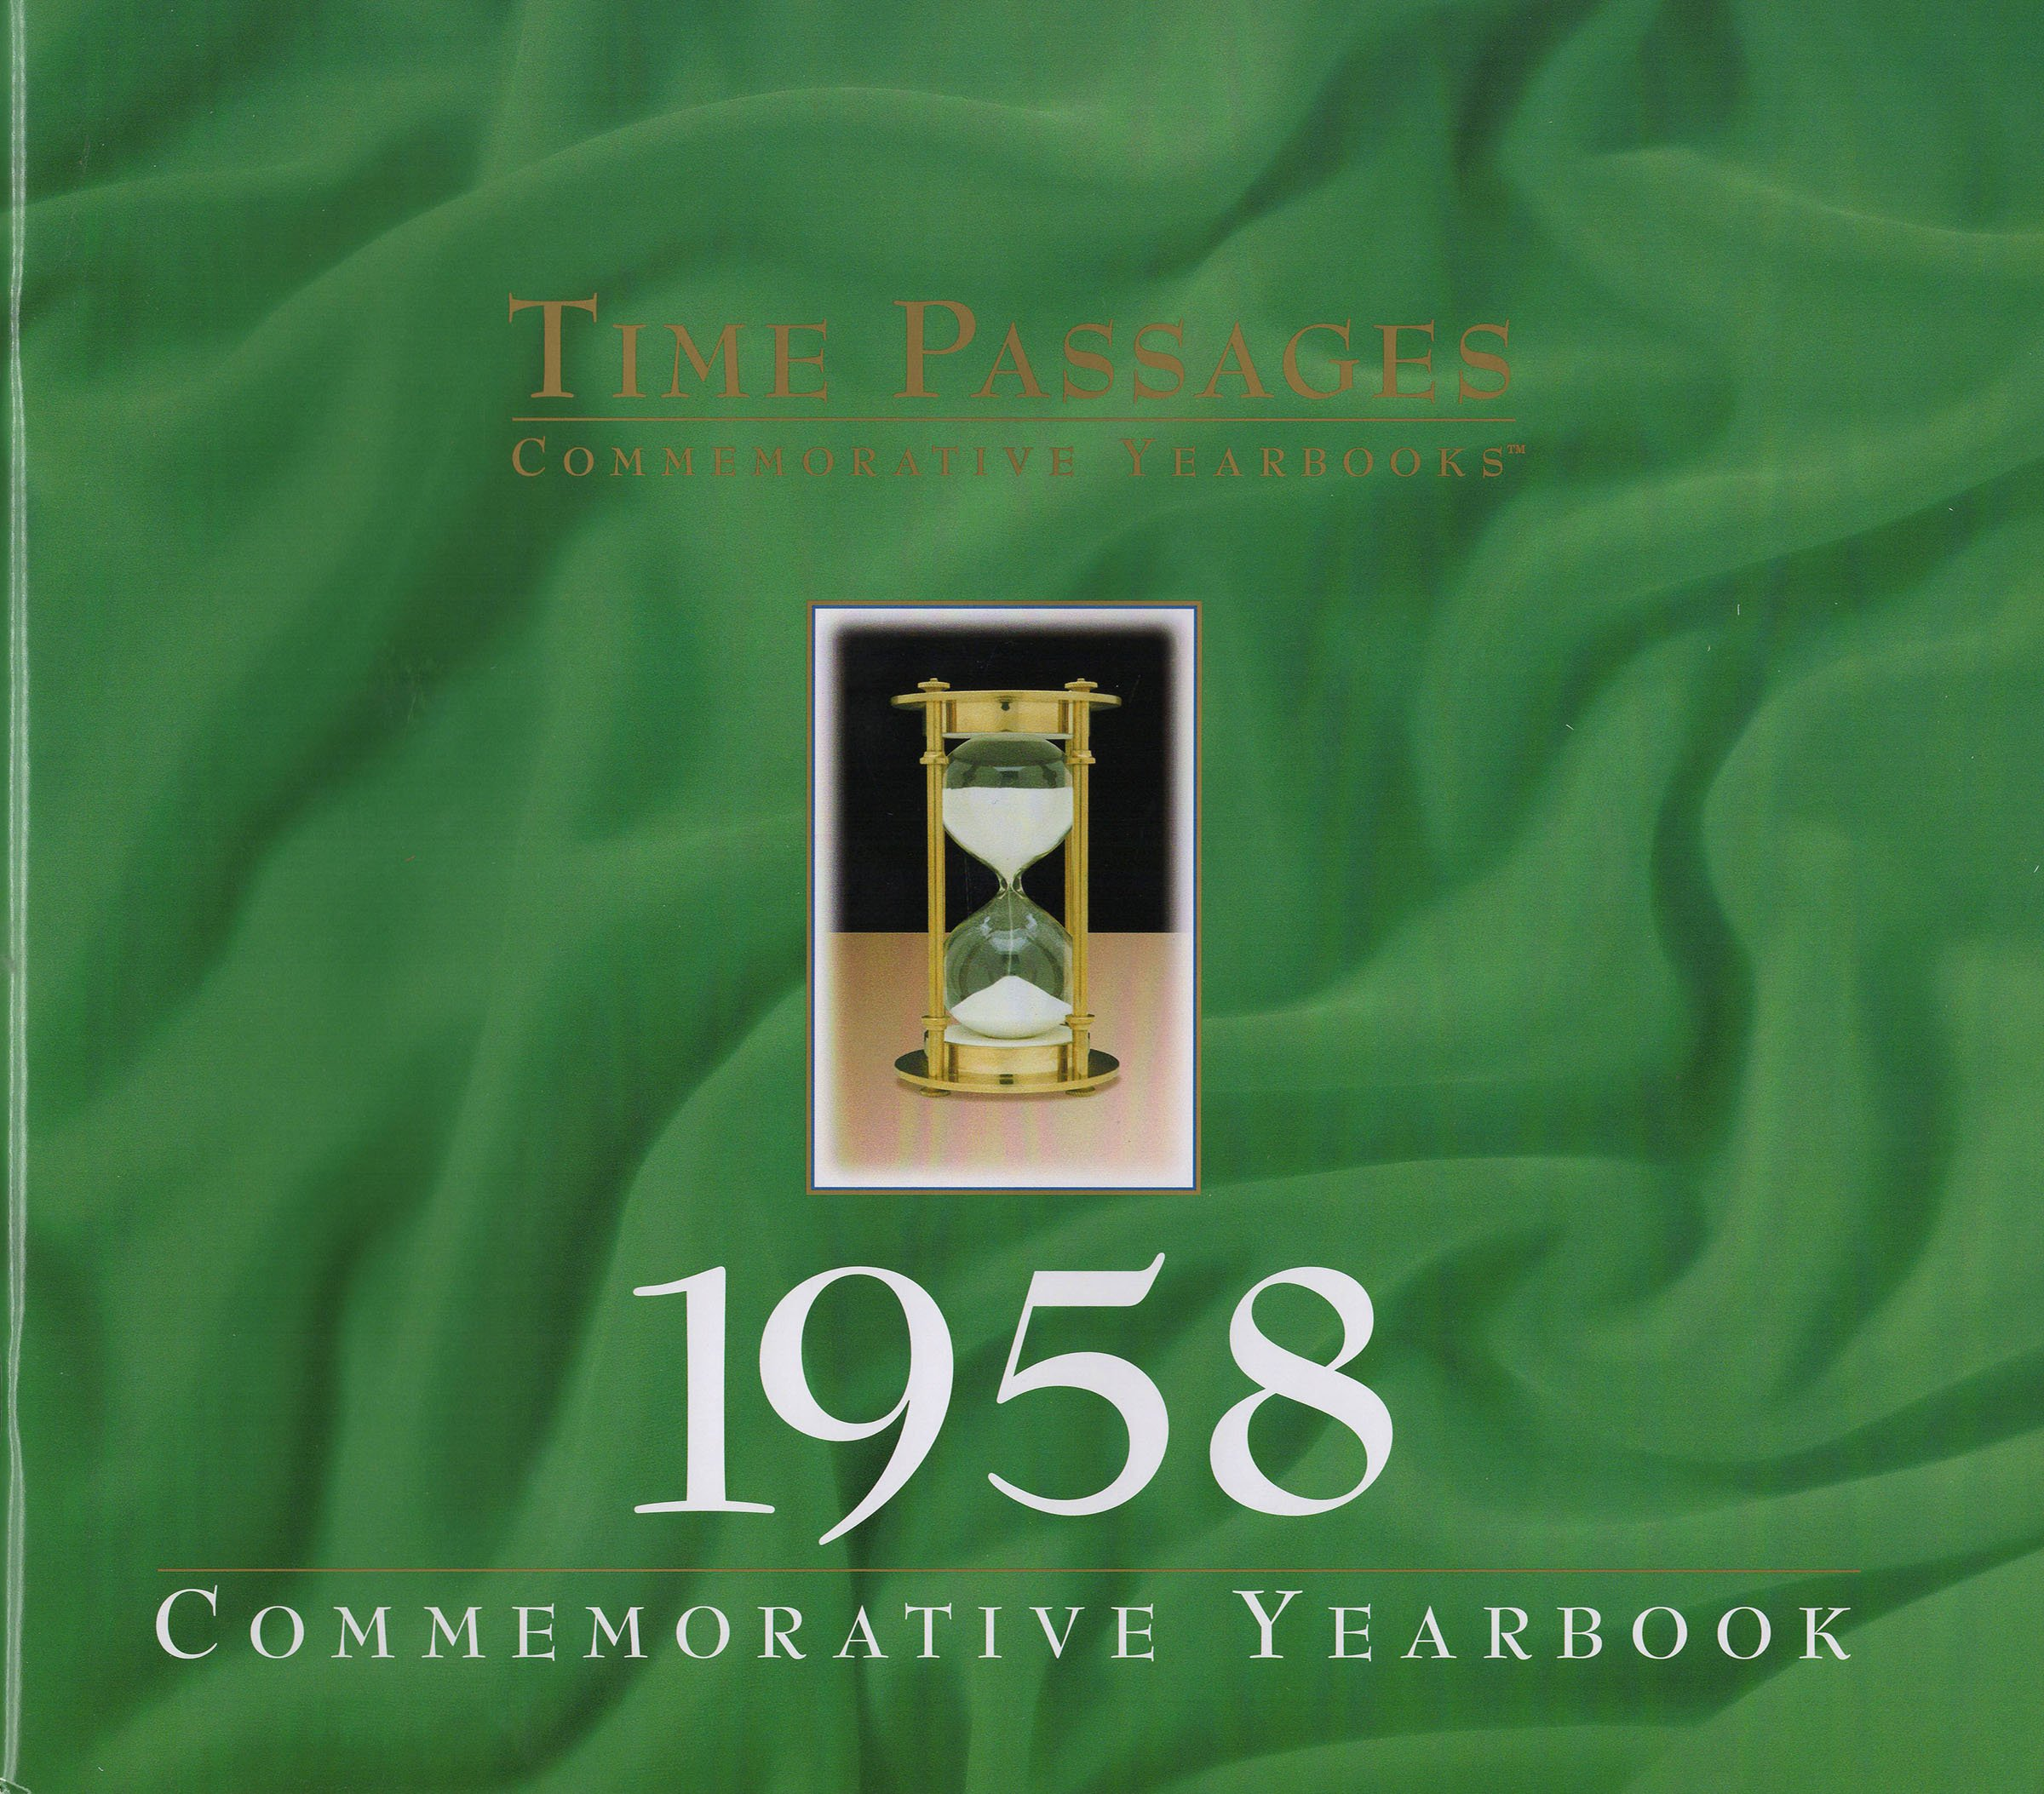 1958 Time Passages Yearbook for 60th Birthday Gift, 60th Anniversary Gift